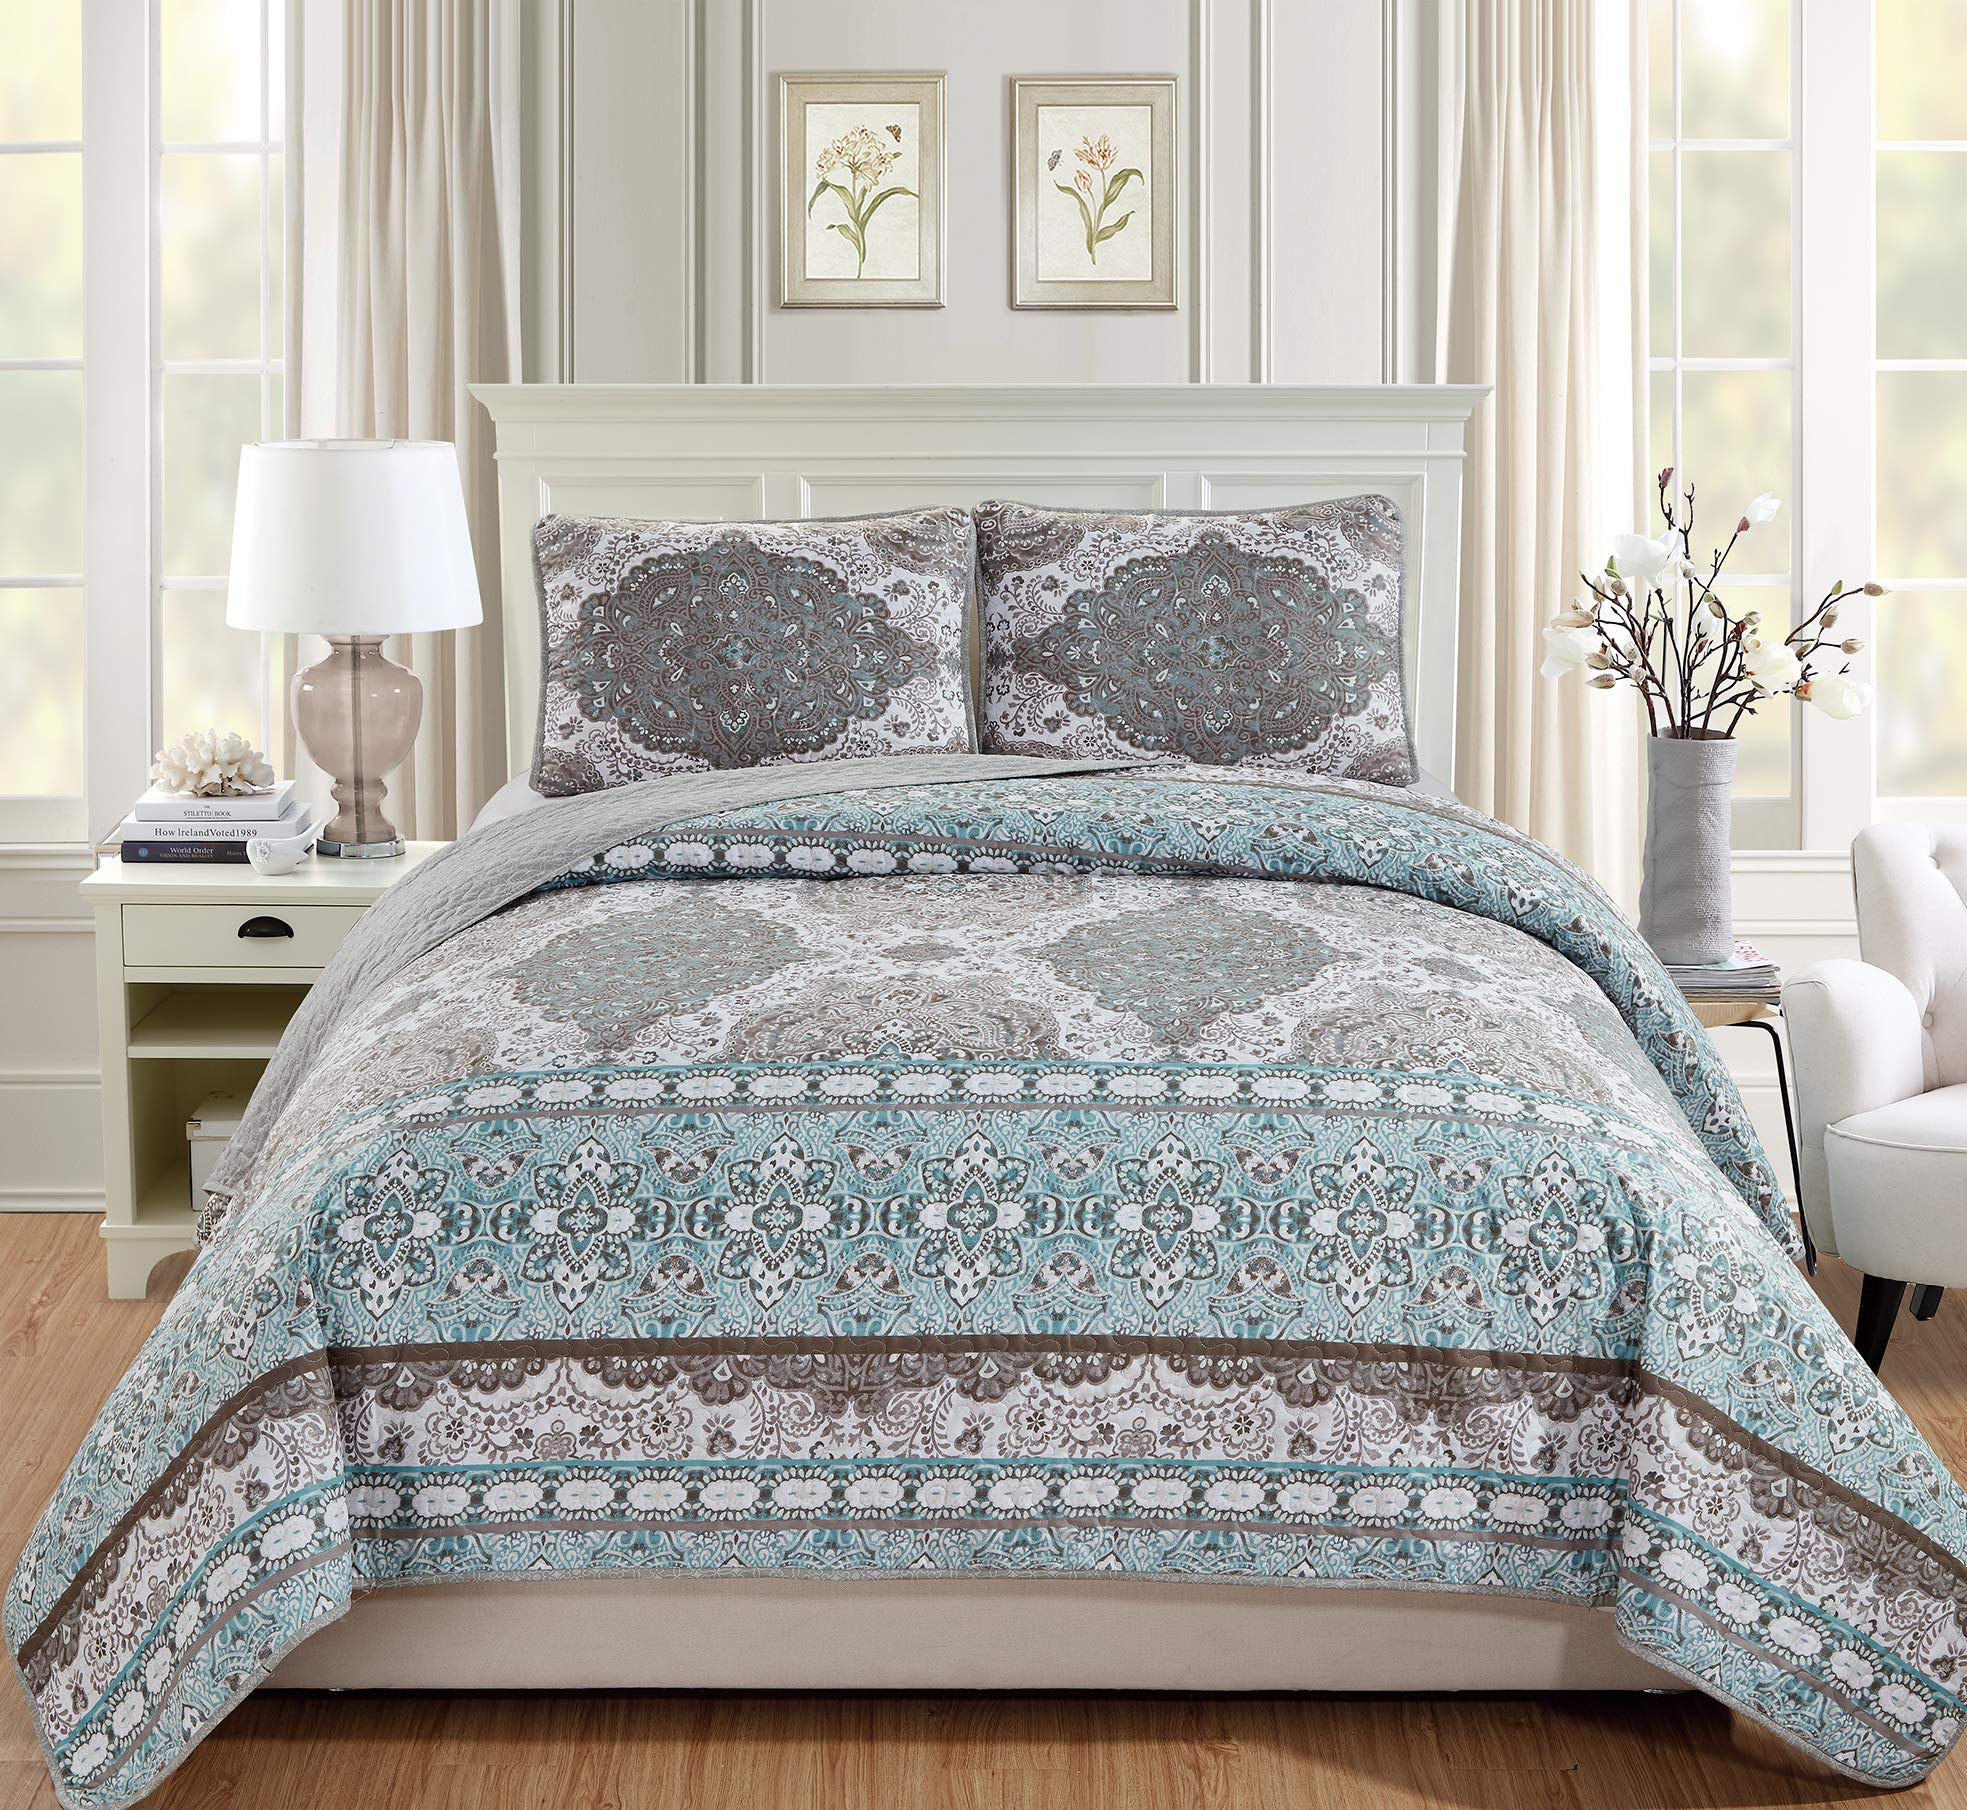 Fancy Linen 3pc King/California King Quilted Coverlet Bedspread Set Floral Grey Aqua Blue Taupe White New by Fancy Linen LLC (Image #1)